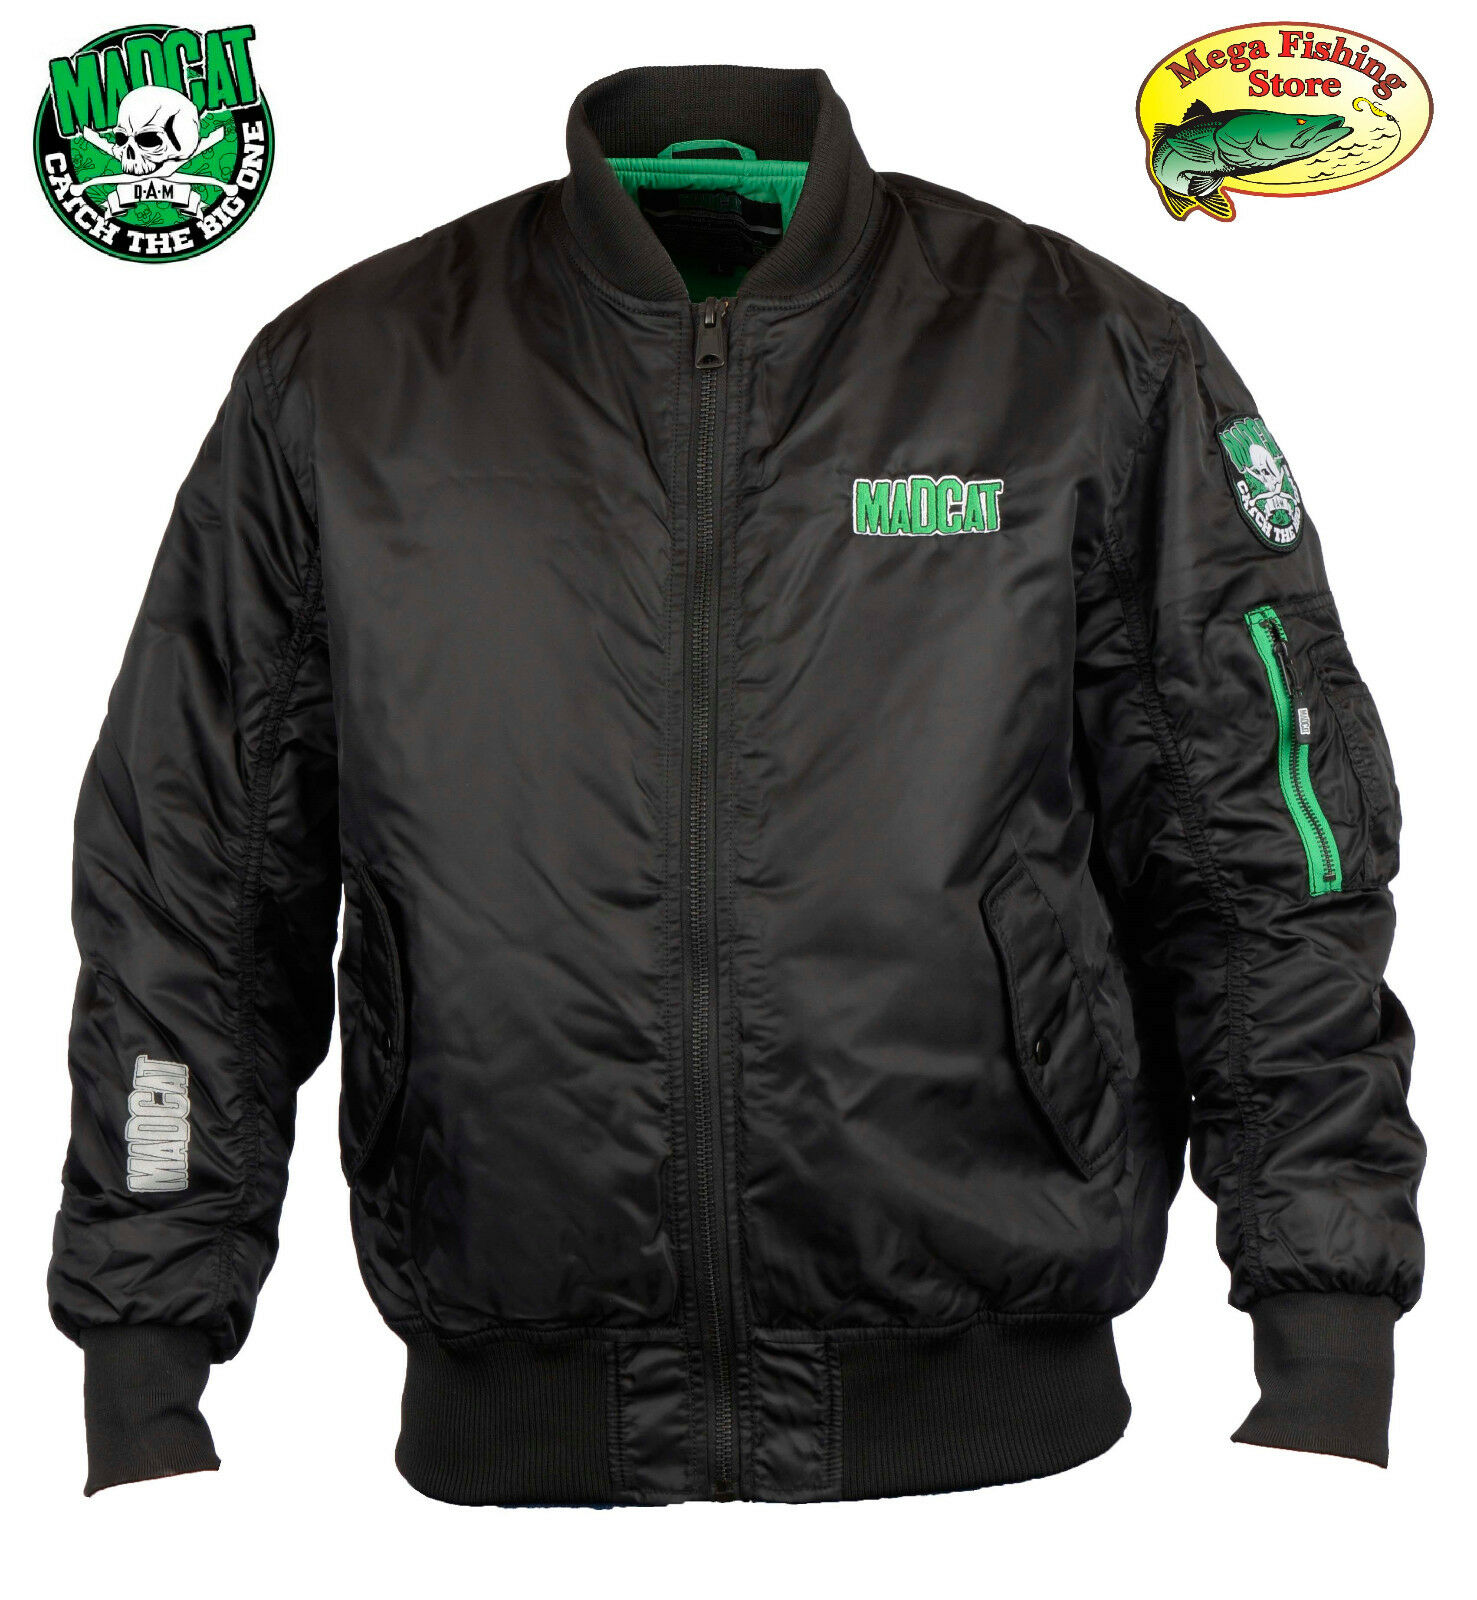 Madcat Bomber Giacca termoOutdoor & TEMPO LIBERO ANGEL Giaccapescatore Bomber Giacca